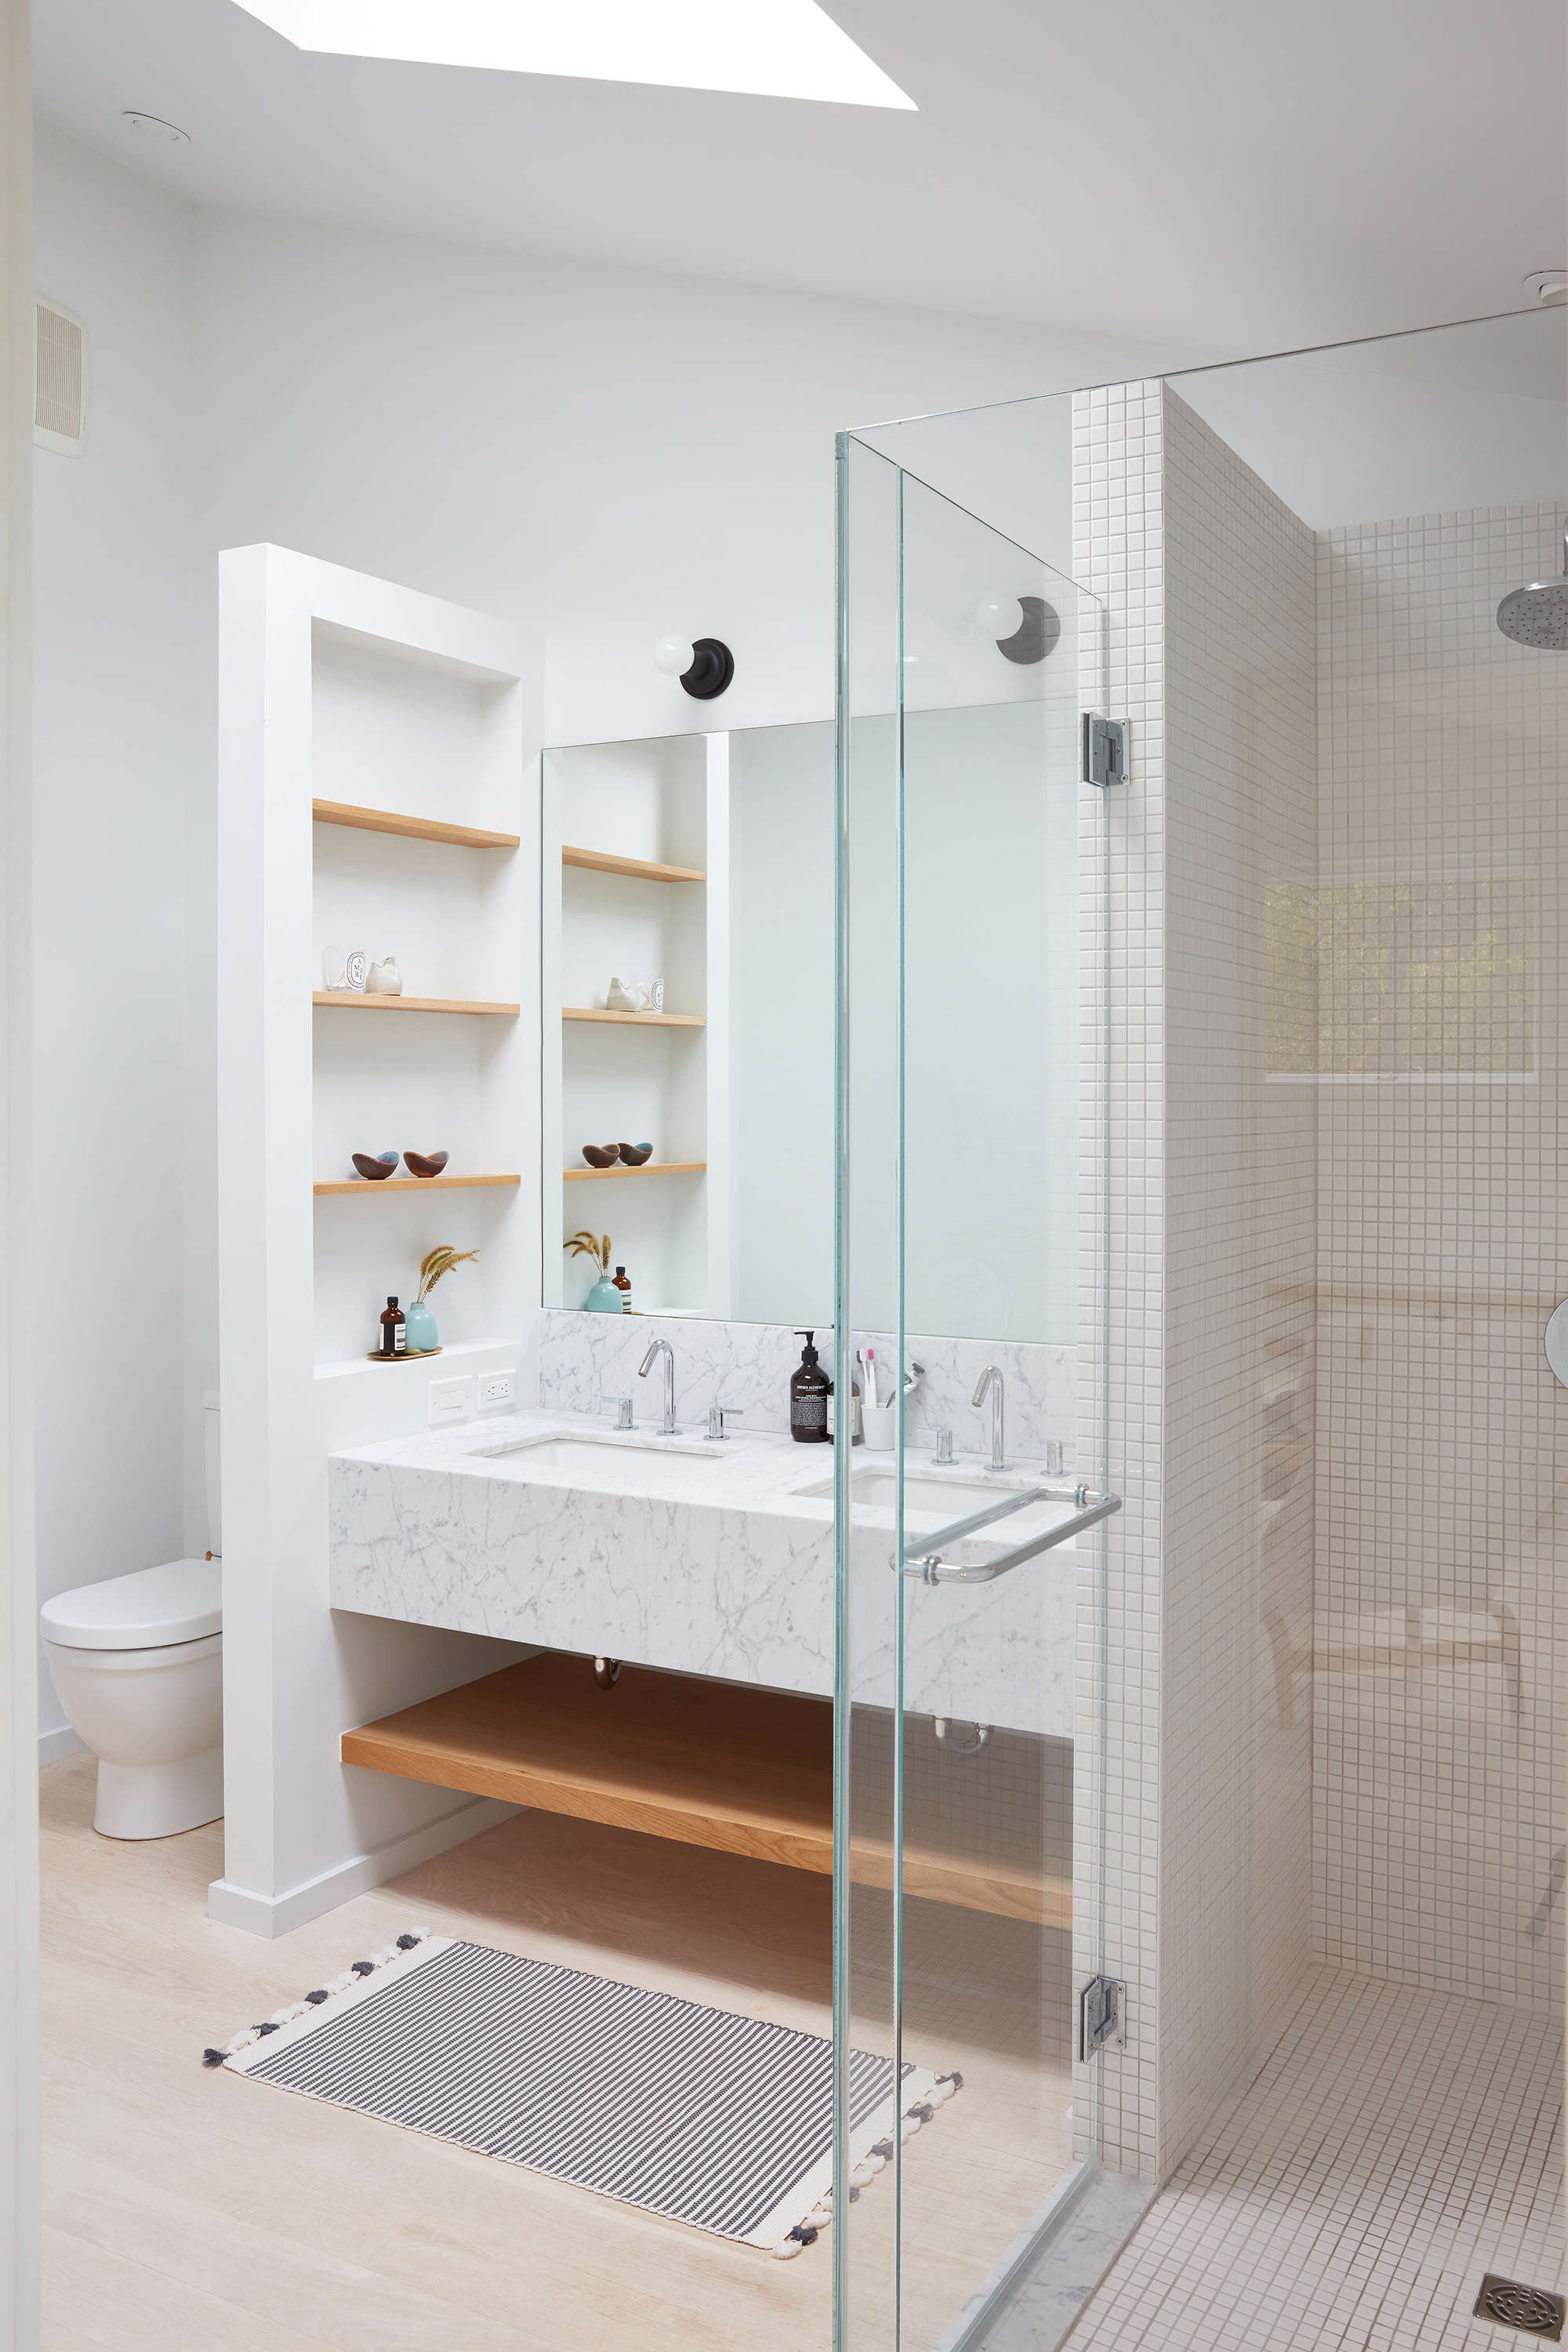 In the master bedroom, a custommarble vanity (also with marble fromABC Stone in Brooklyn) is fitted with custom oak shelves, perfect for storing bath essentials. A glass-enclosed shower usessquare tiles from Nemo Tile. The toilet is the Duravit Happy D., and the striped rug is from Nickey Keyhoe in LA.